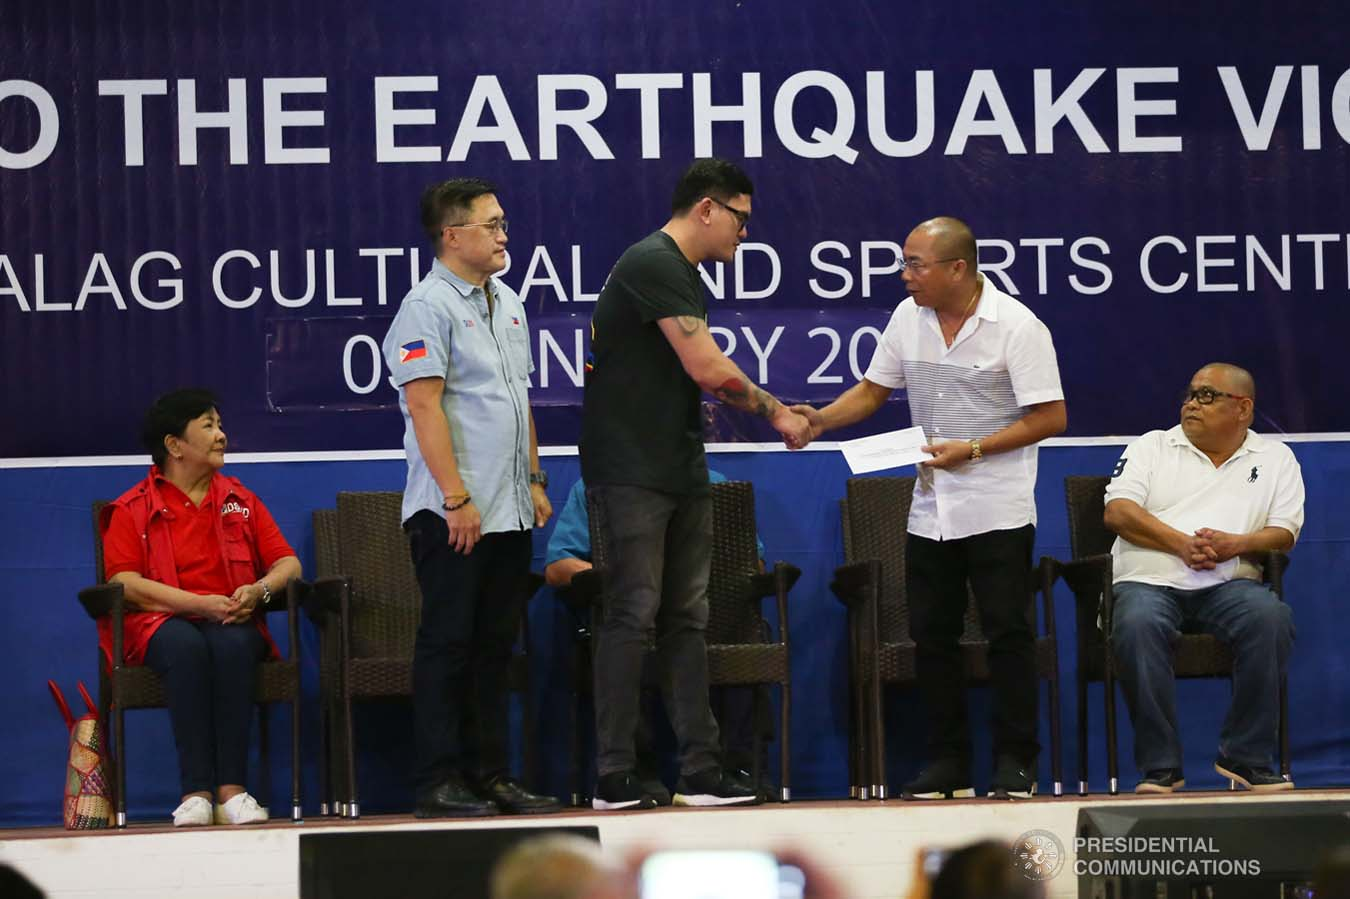 """Davao City Vice Mayor Sebastian Duterte, who visited earthquake victims in Malalag, Davao del Sur on behalf of his father President Rodrigo Roa Duterte, turns over a check worth P5 million to Malalag Mayor Peter Valentin during a ceremony at the Malalag Cultural and Sports Center on January 3, 2020. Assisting the President's son is Senator Christopher """"Bong"""" Go. KARL NORMAN ALONZO/PRESIDENTIAL PHOTO"""